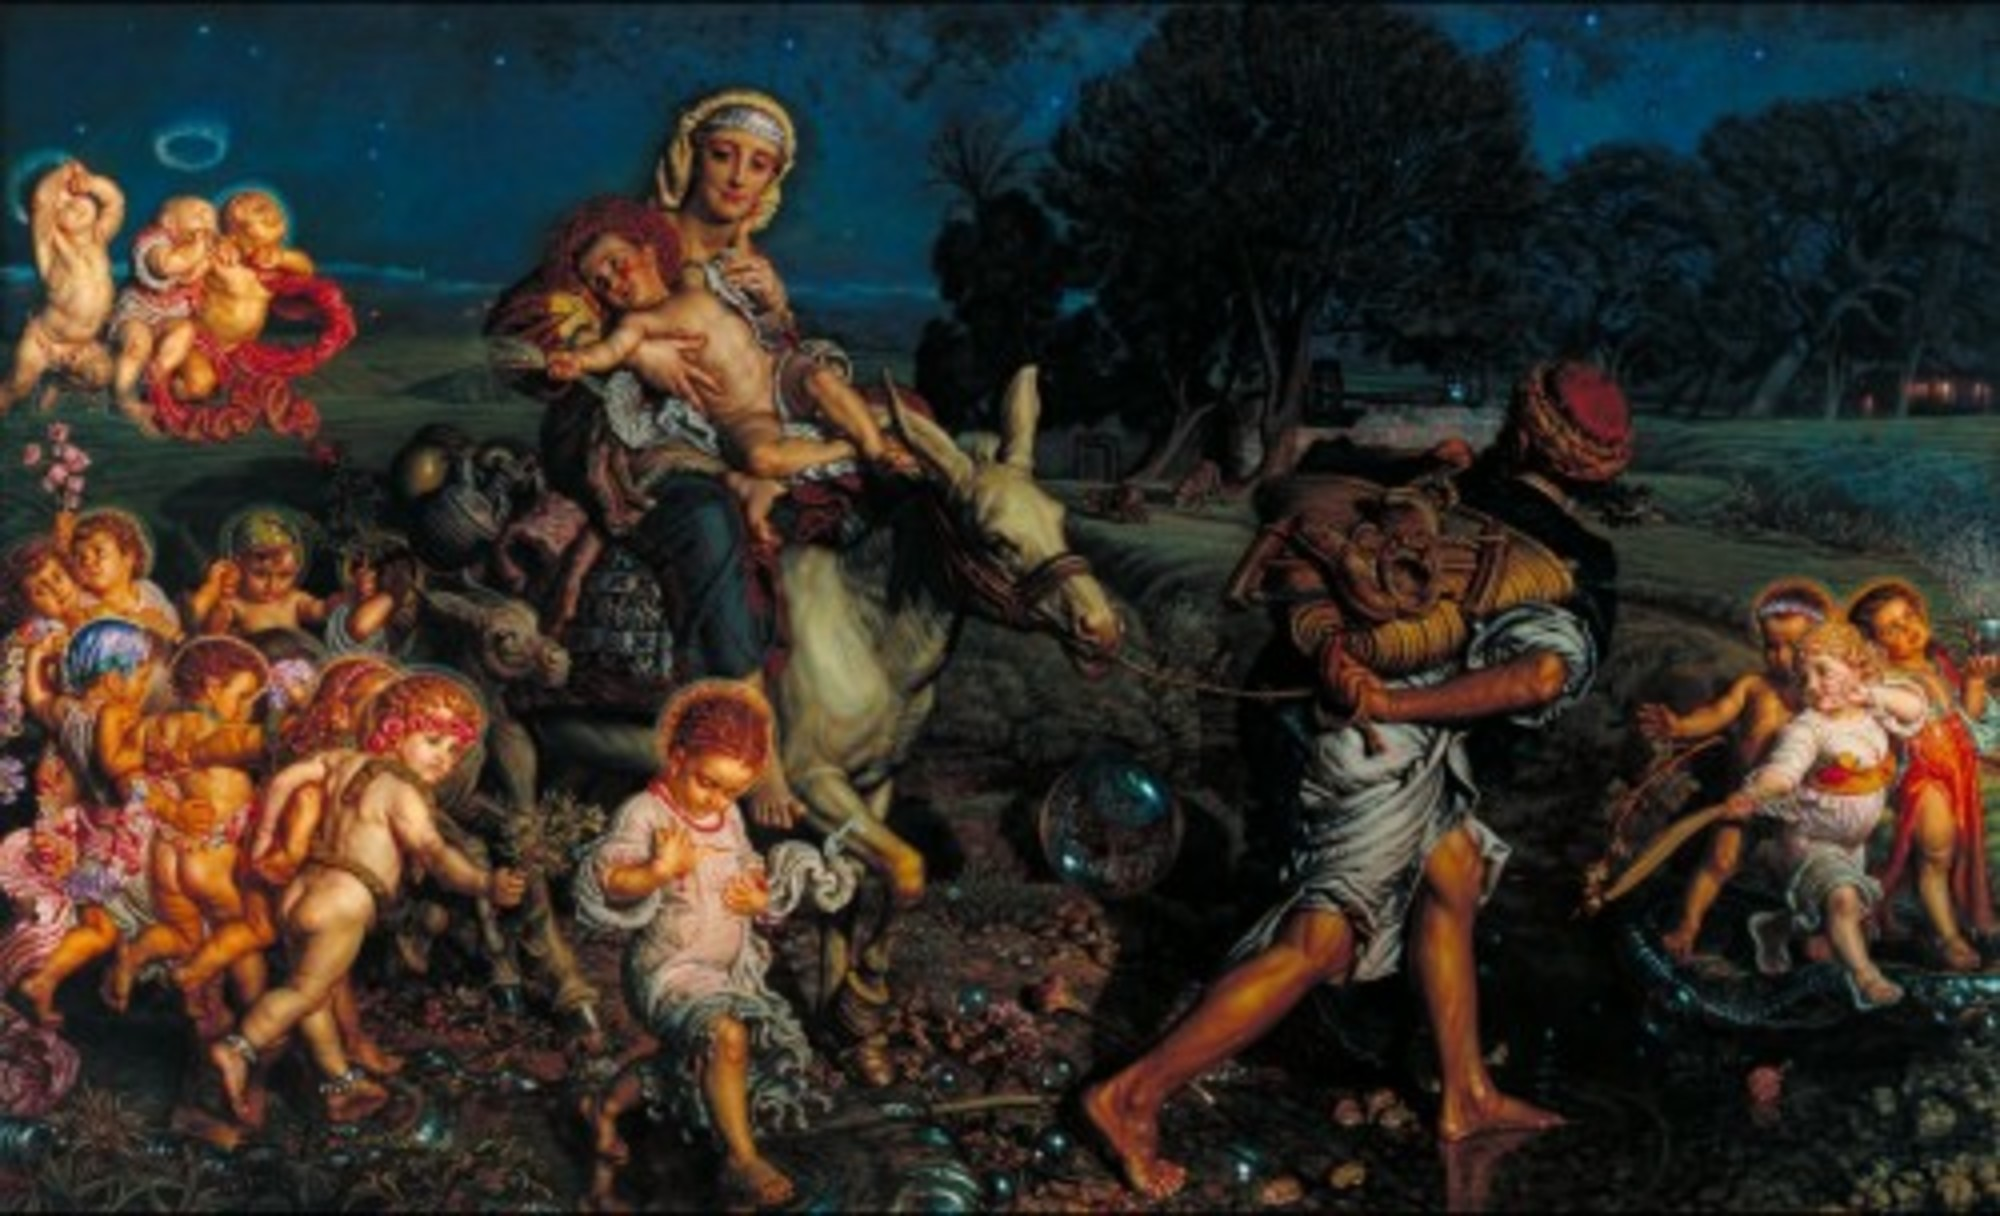 William-Holman-Hunt---The-Triumph-of-the-Innocents-Tate-Britain.jpg